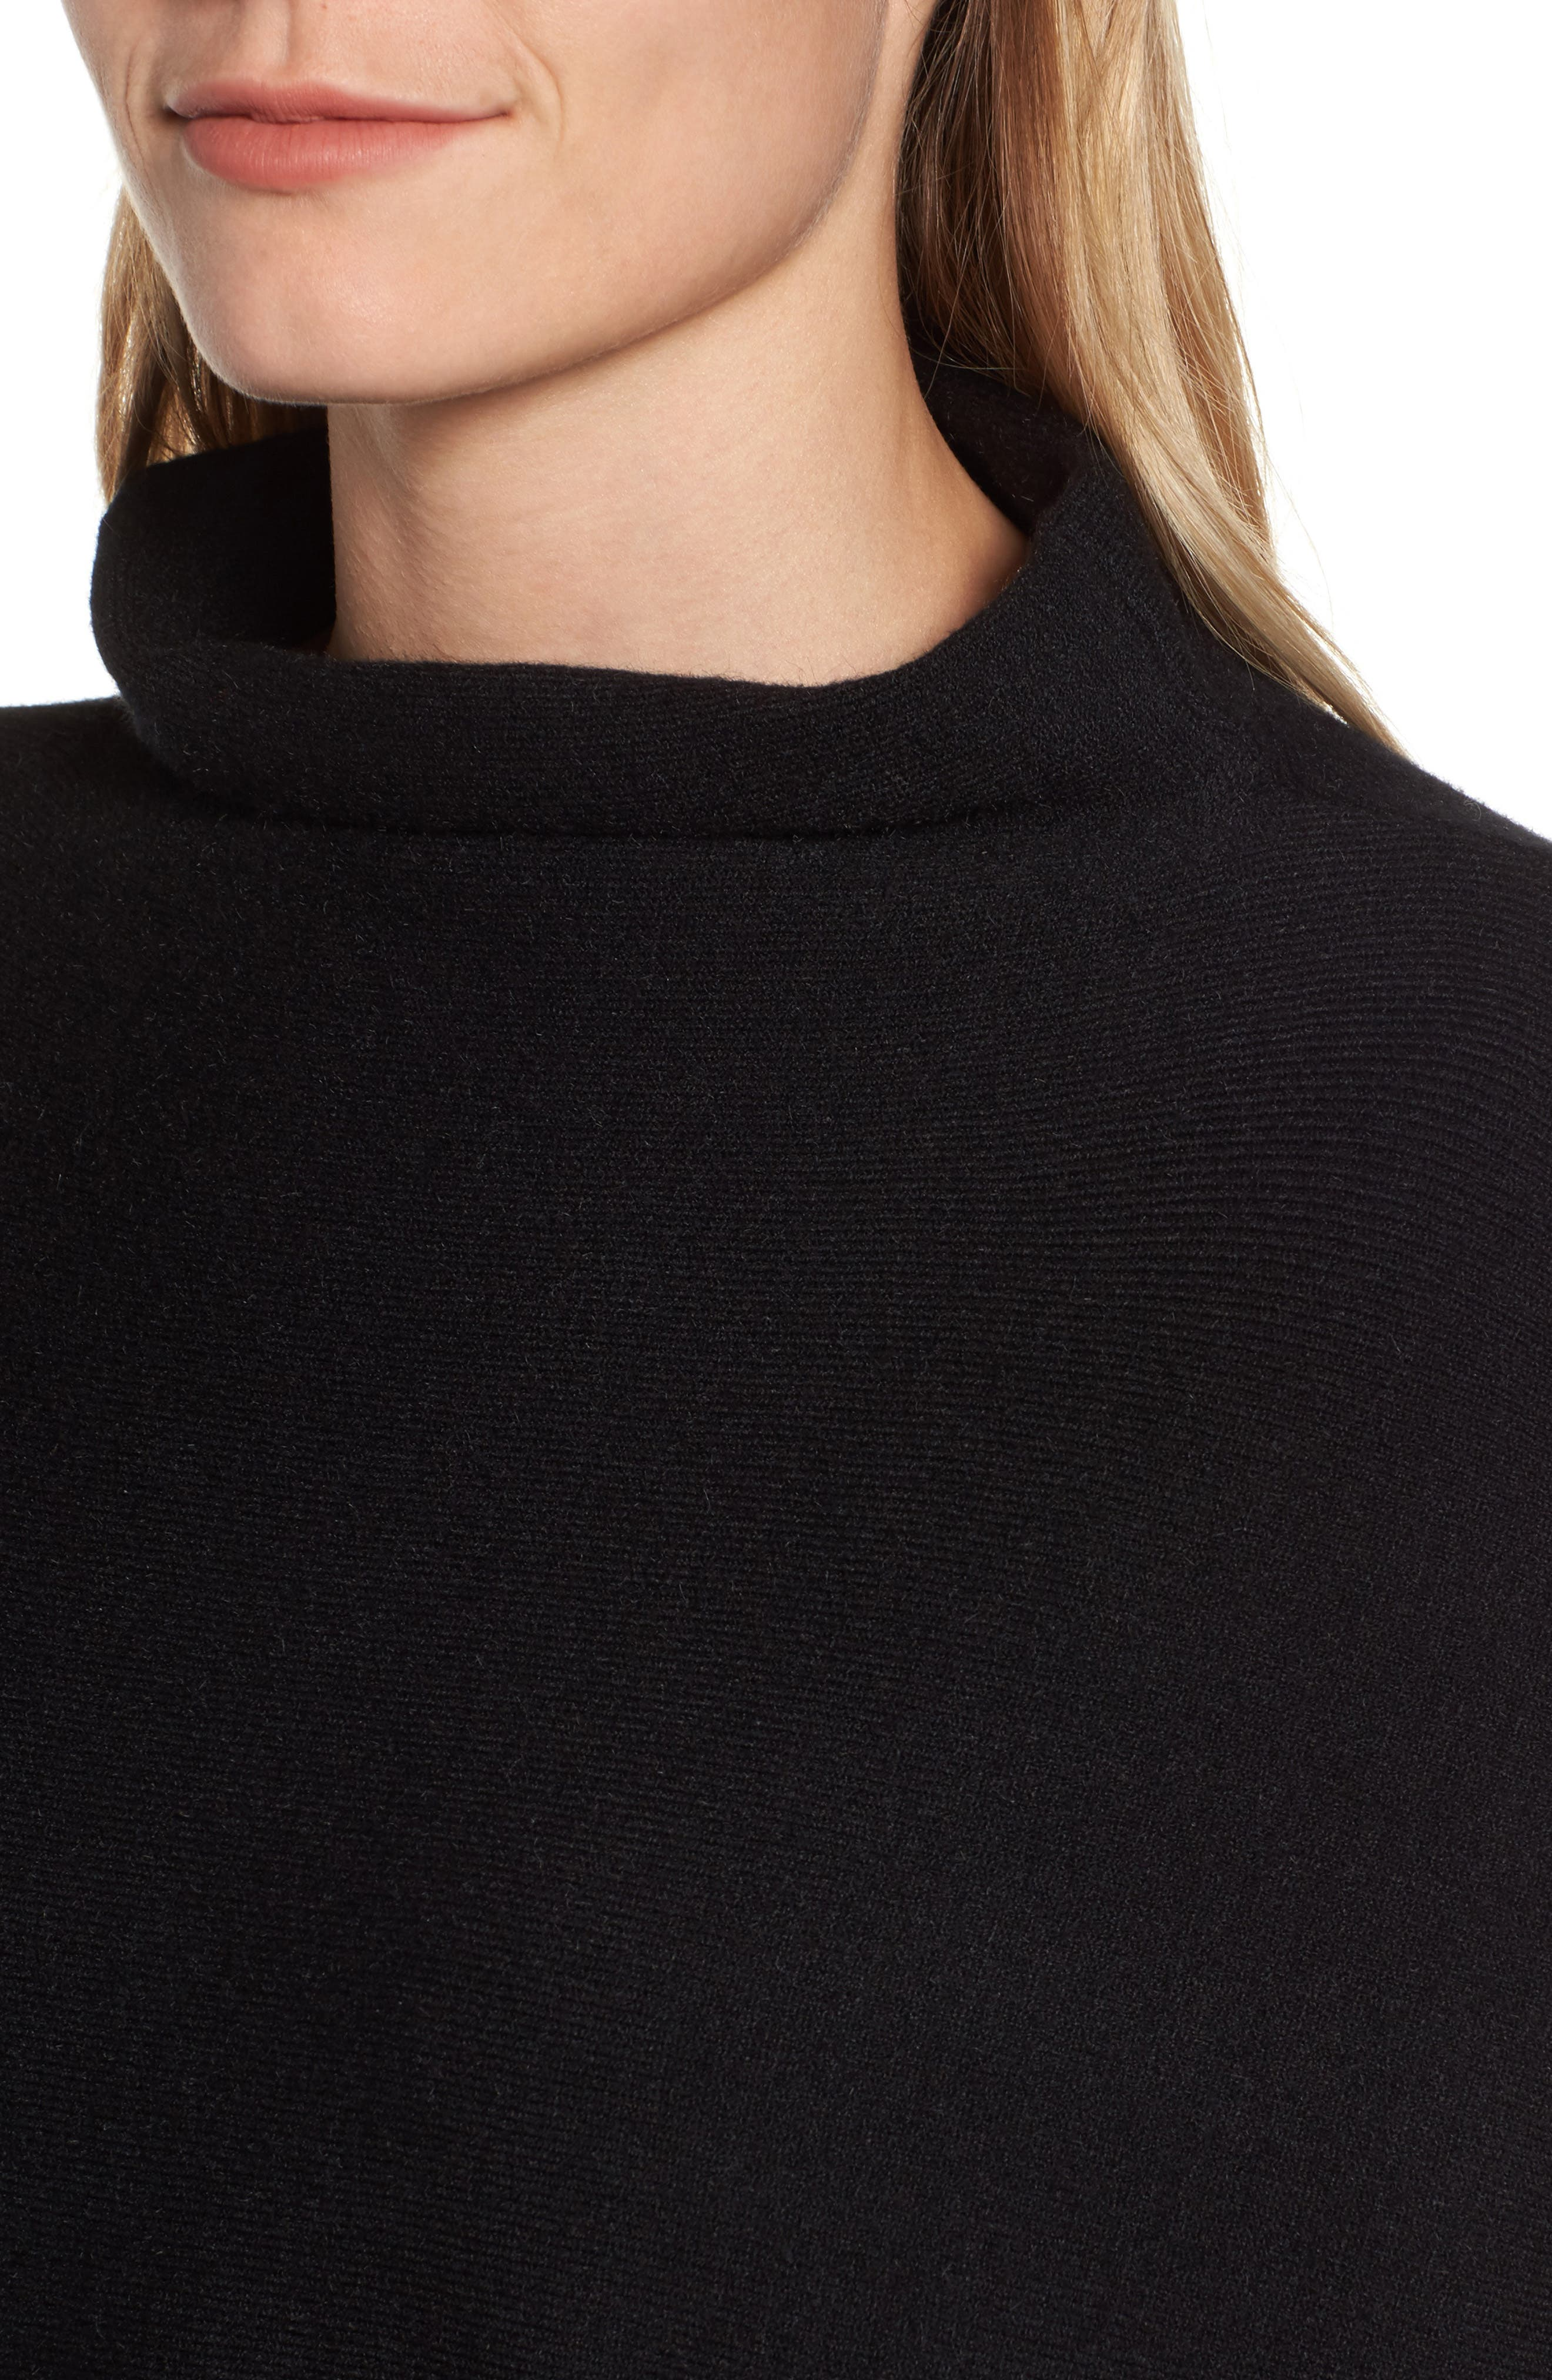 RD Style Boxy Pocket Sweater,                             Alternate thumbnail 4, color,                             001